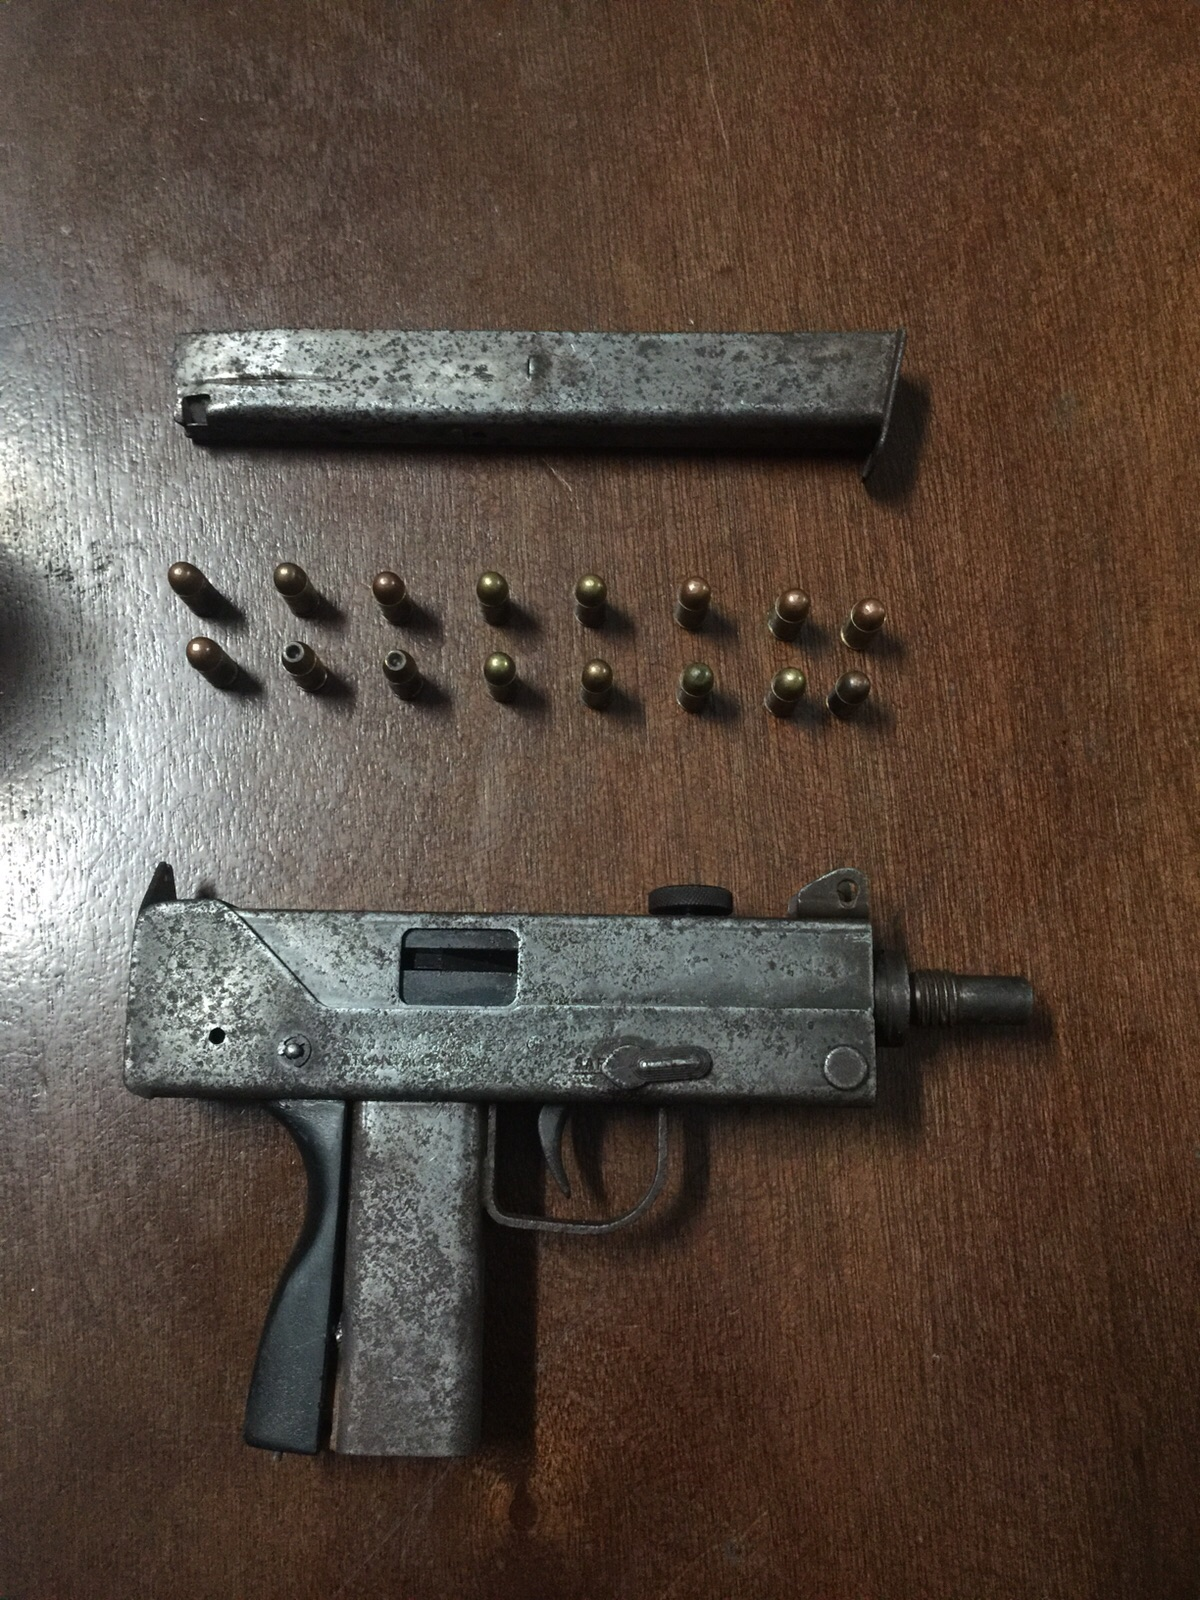 M-12 pistol and rounds seized during stop and search 03 January 2016